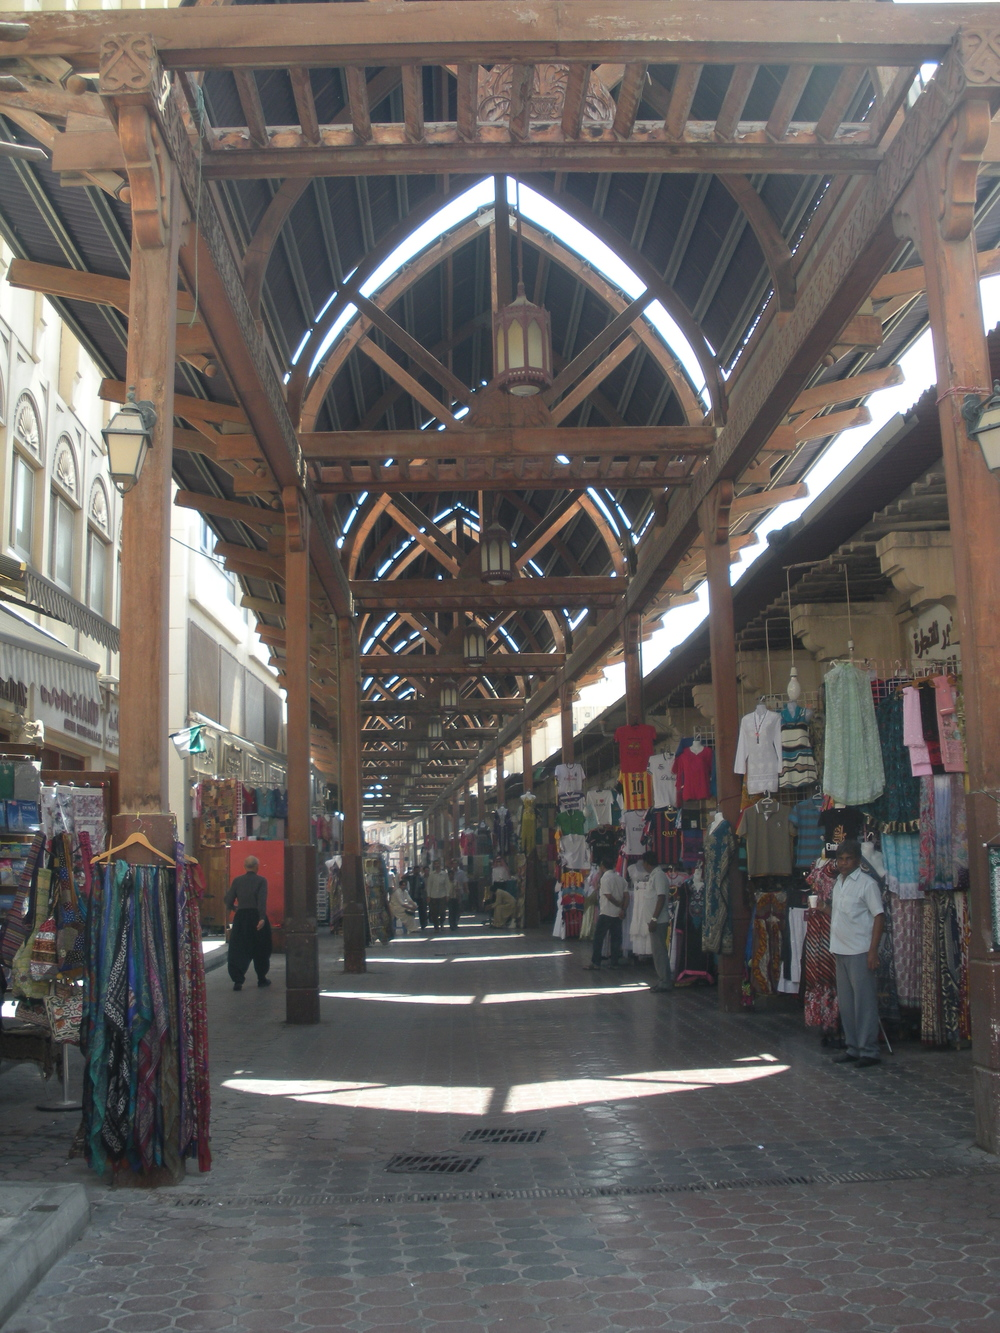 Welcome to the souk!